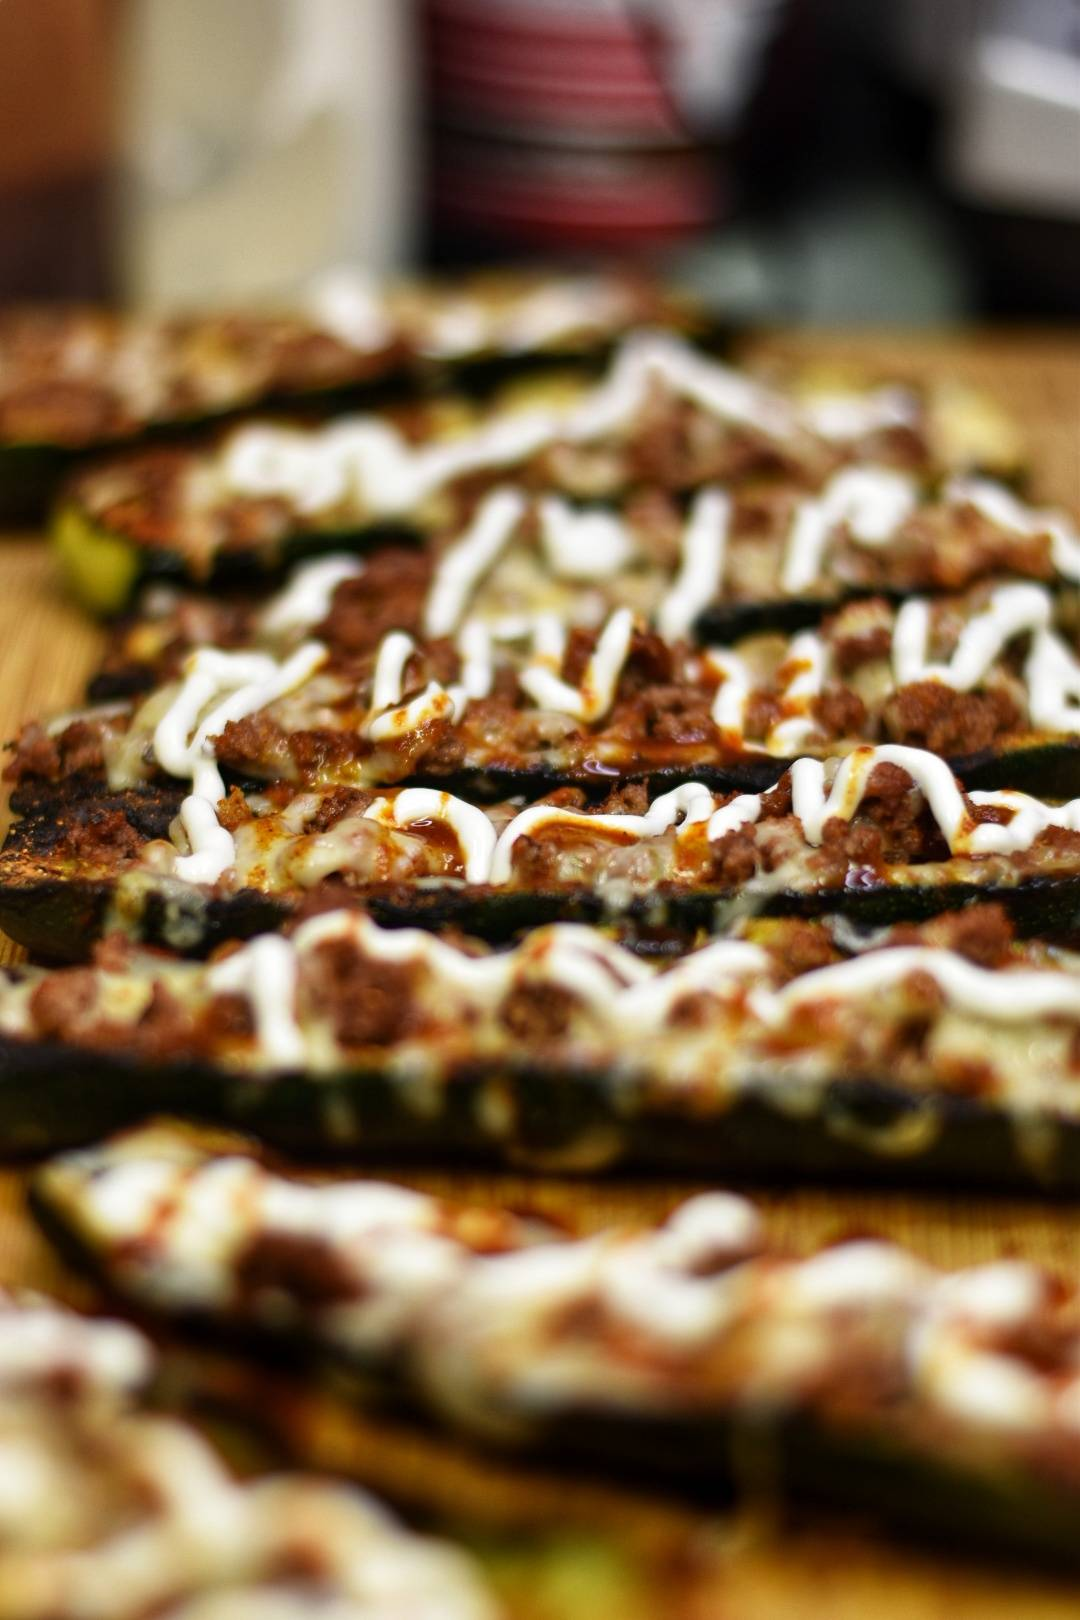 Grilled zucchini with ground beef and shredded cheese topped with sour cream and chili sauce